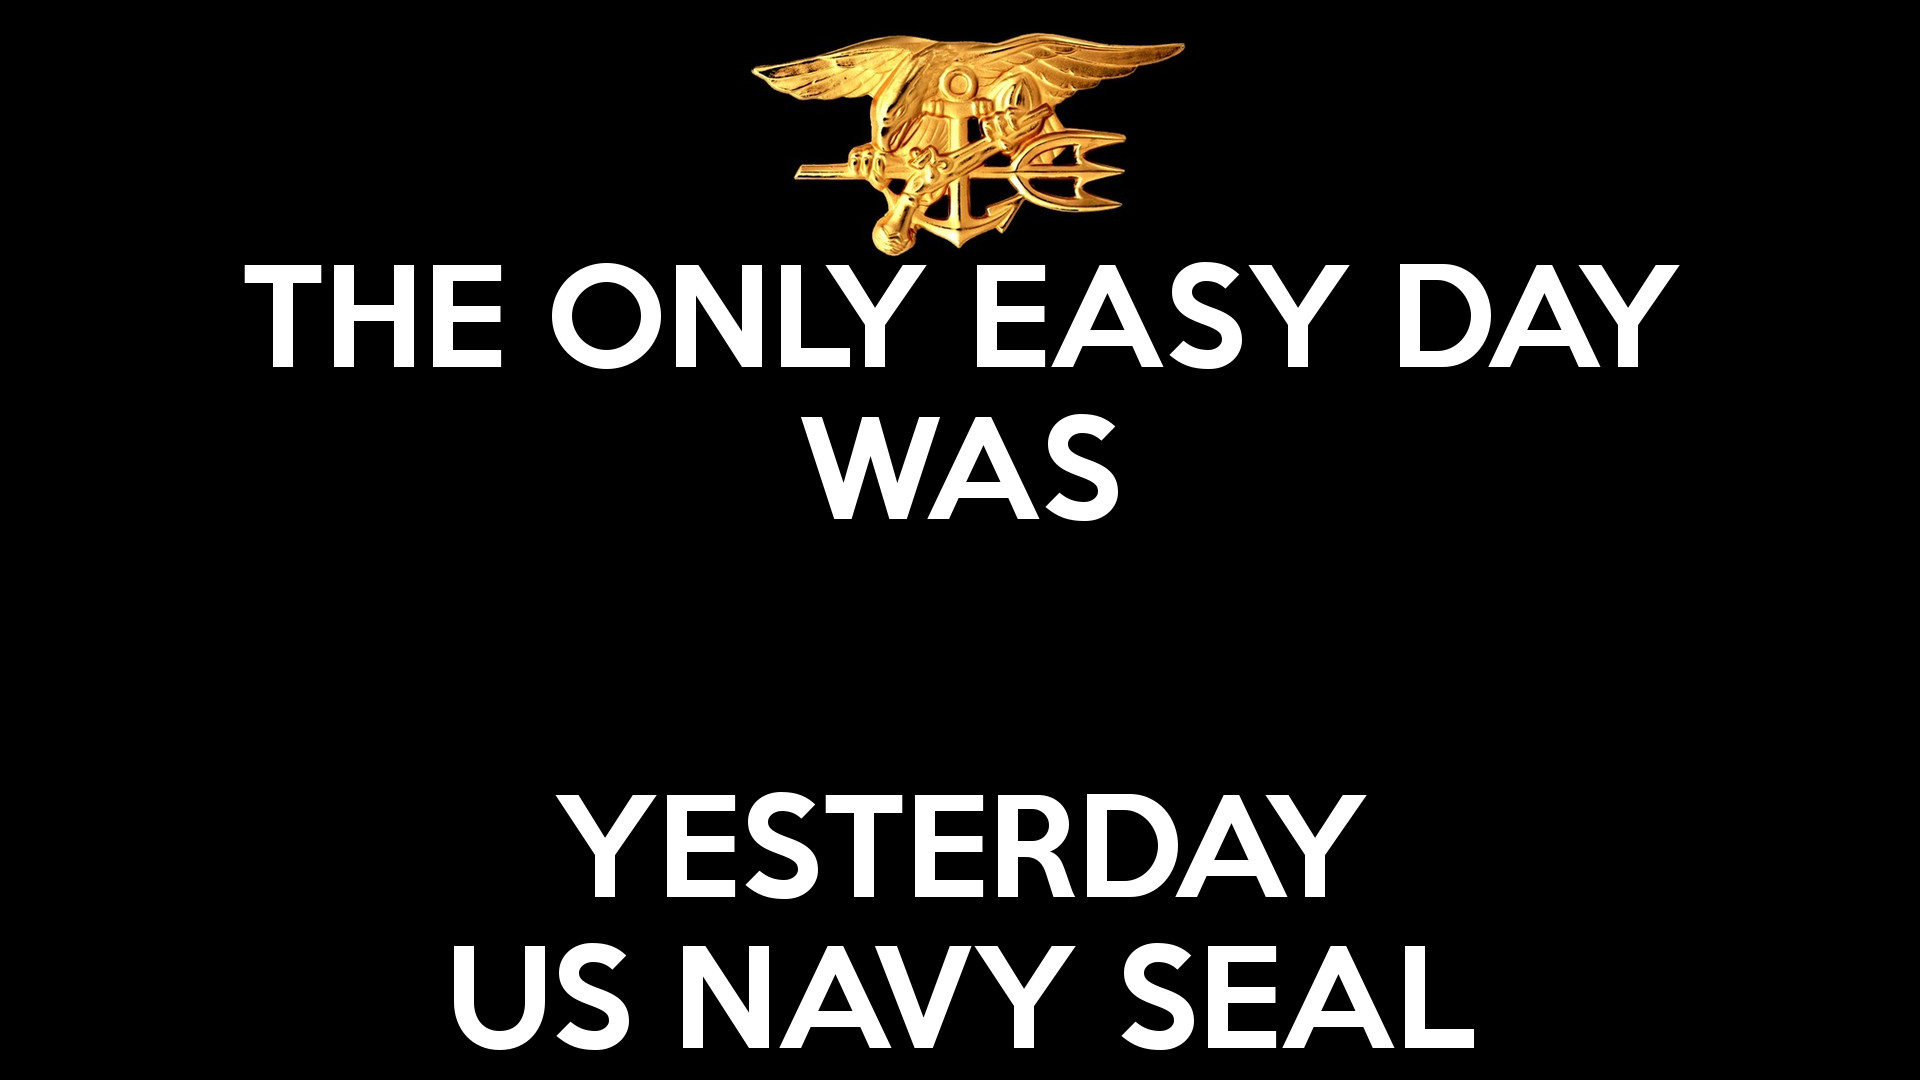 The only easy day was yesterday wallpaper navy seals